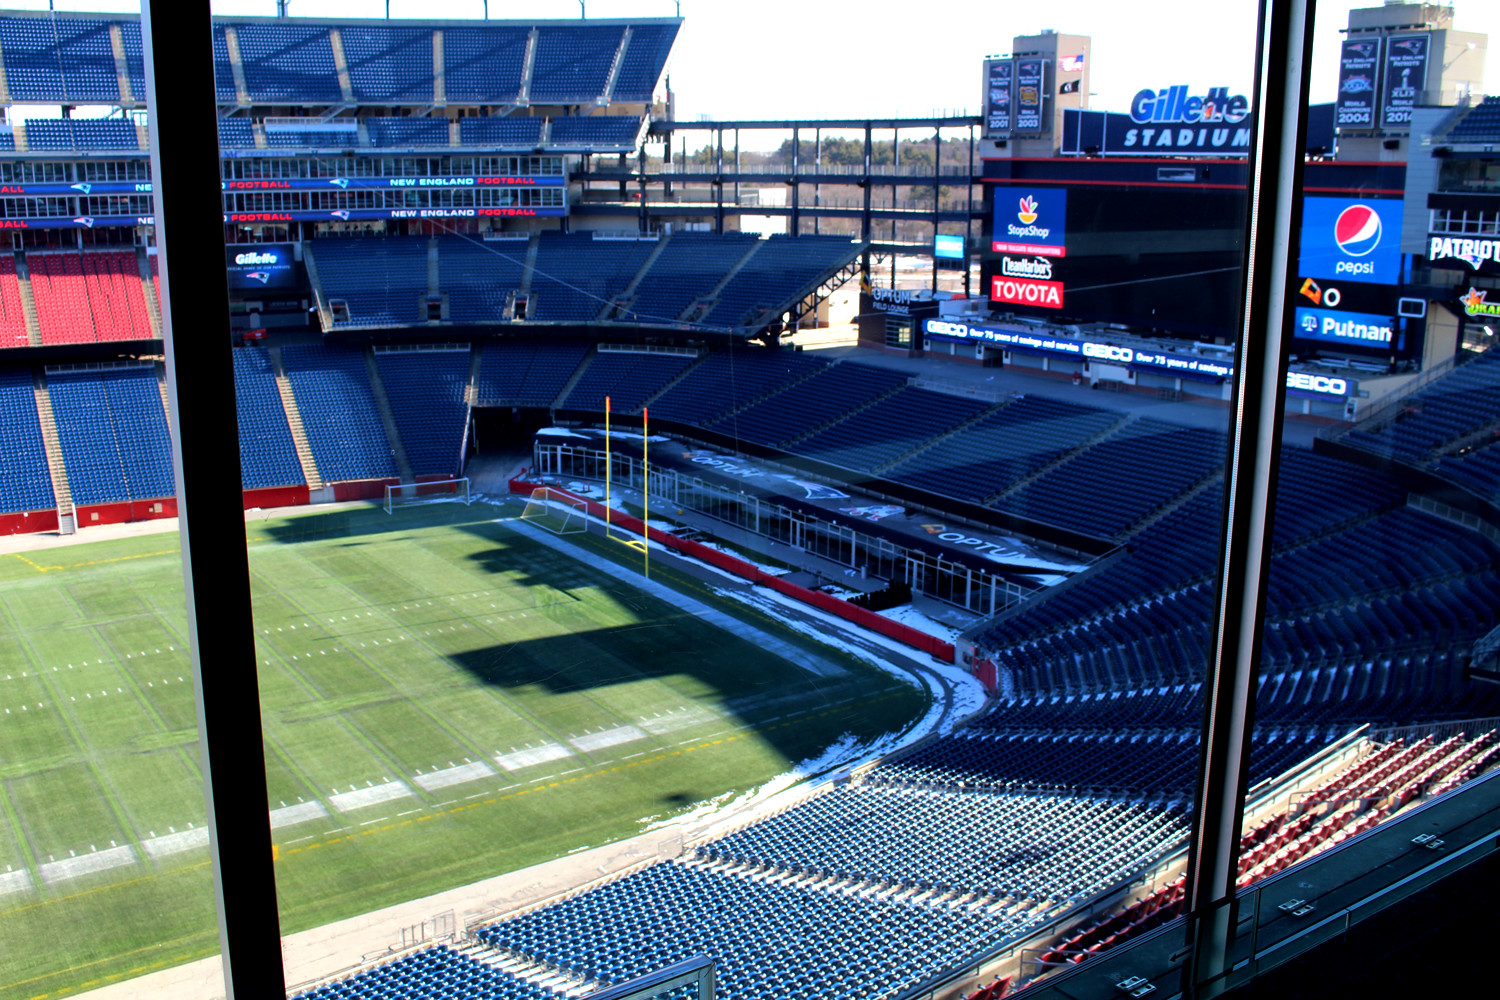 Gillette Stadium South End Zone Club